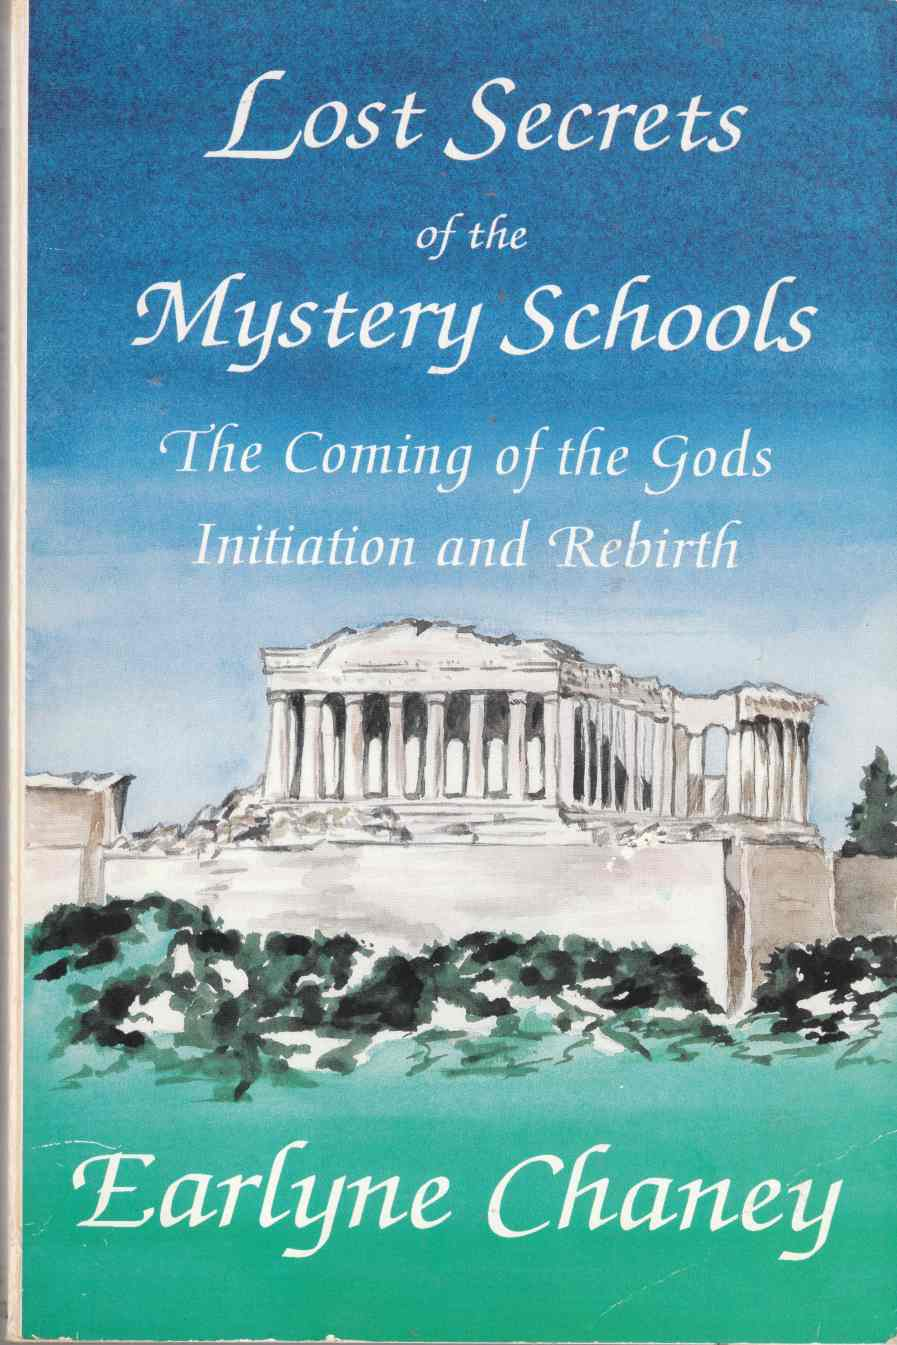 Image for Lost Secrets of the Mystery Schools The Coming of the Gods Initiation and Rebirth